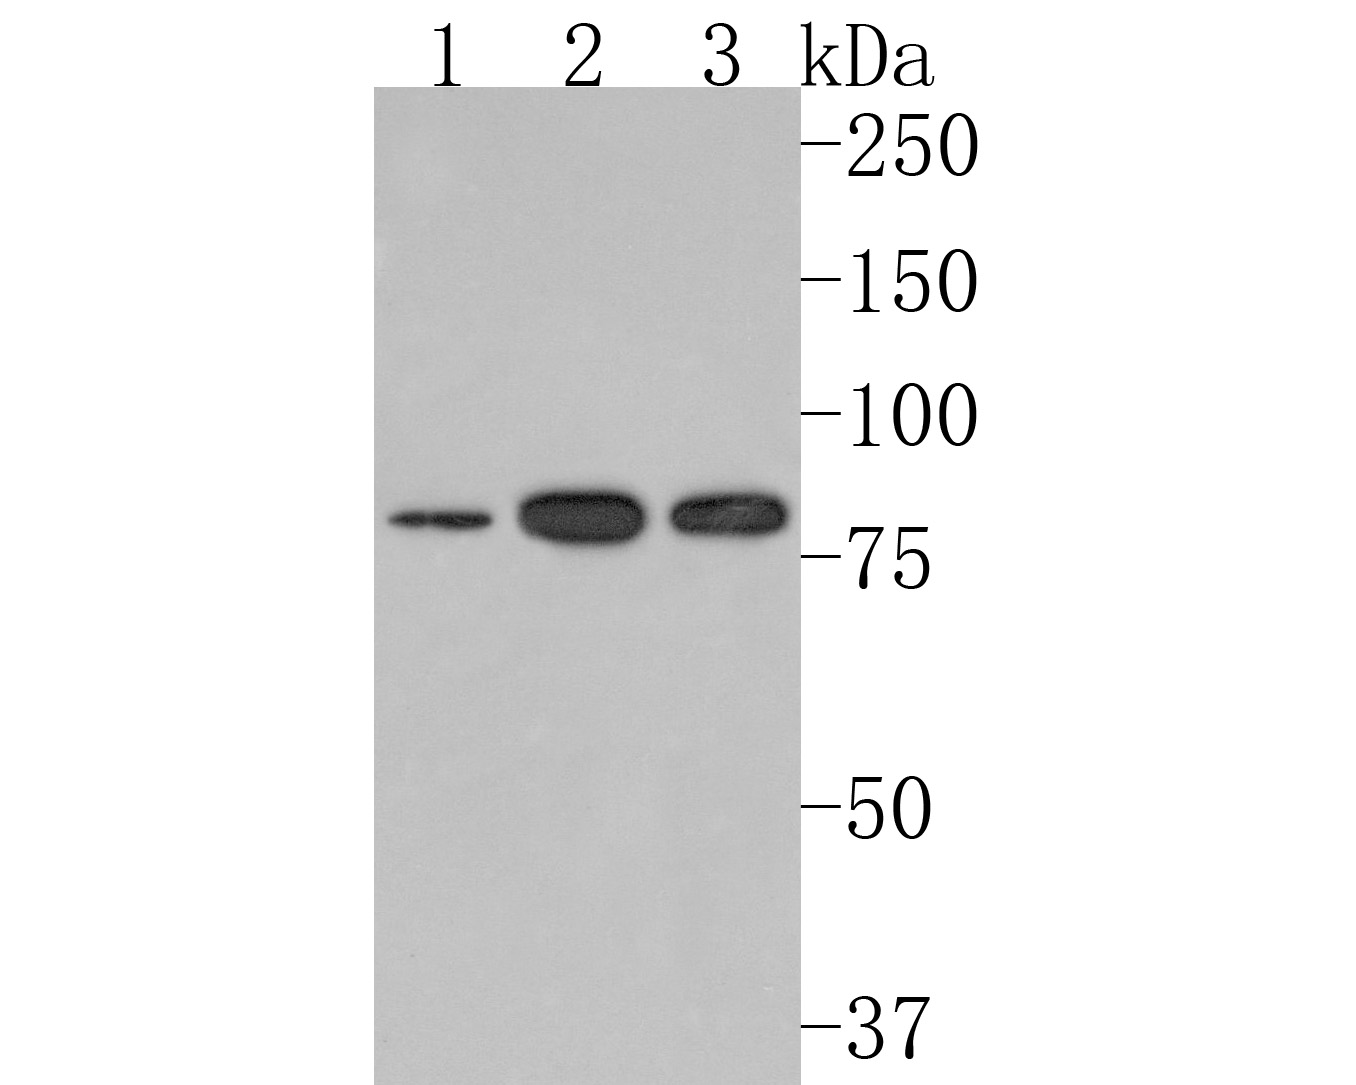 Western blot analysis of Methylmalonyl Coenzyme A mutase on different lysates. Proteins were transferred to a PVDF membrane and blocked with 5% BSA in PBS for 1 hour at room temperature. The primary antibody (HA720108, 1/500) was used in 5% BSA at room temperature for 2 hours. Goat Anti-Rabbit IgG - HRP Secondary Antibody (HA1001) at 1:200,000 dilution was used for 1 hour at room temperature.<br /> Positive control: <br /> Lane 1: HepG2 cell lysate<br /> Lane 2: Jurkat cell lysate<br /> Lane 3: THP-1 cell lysate